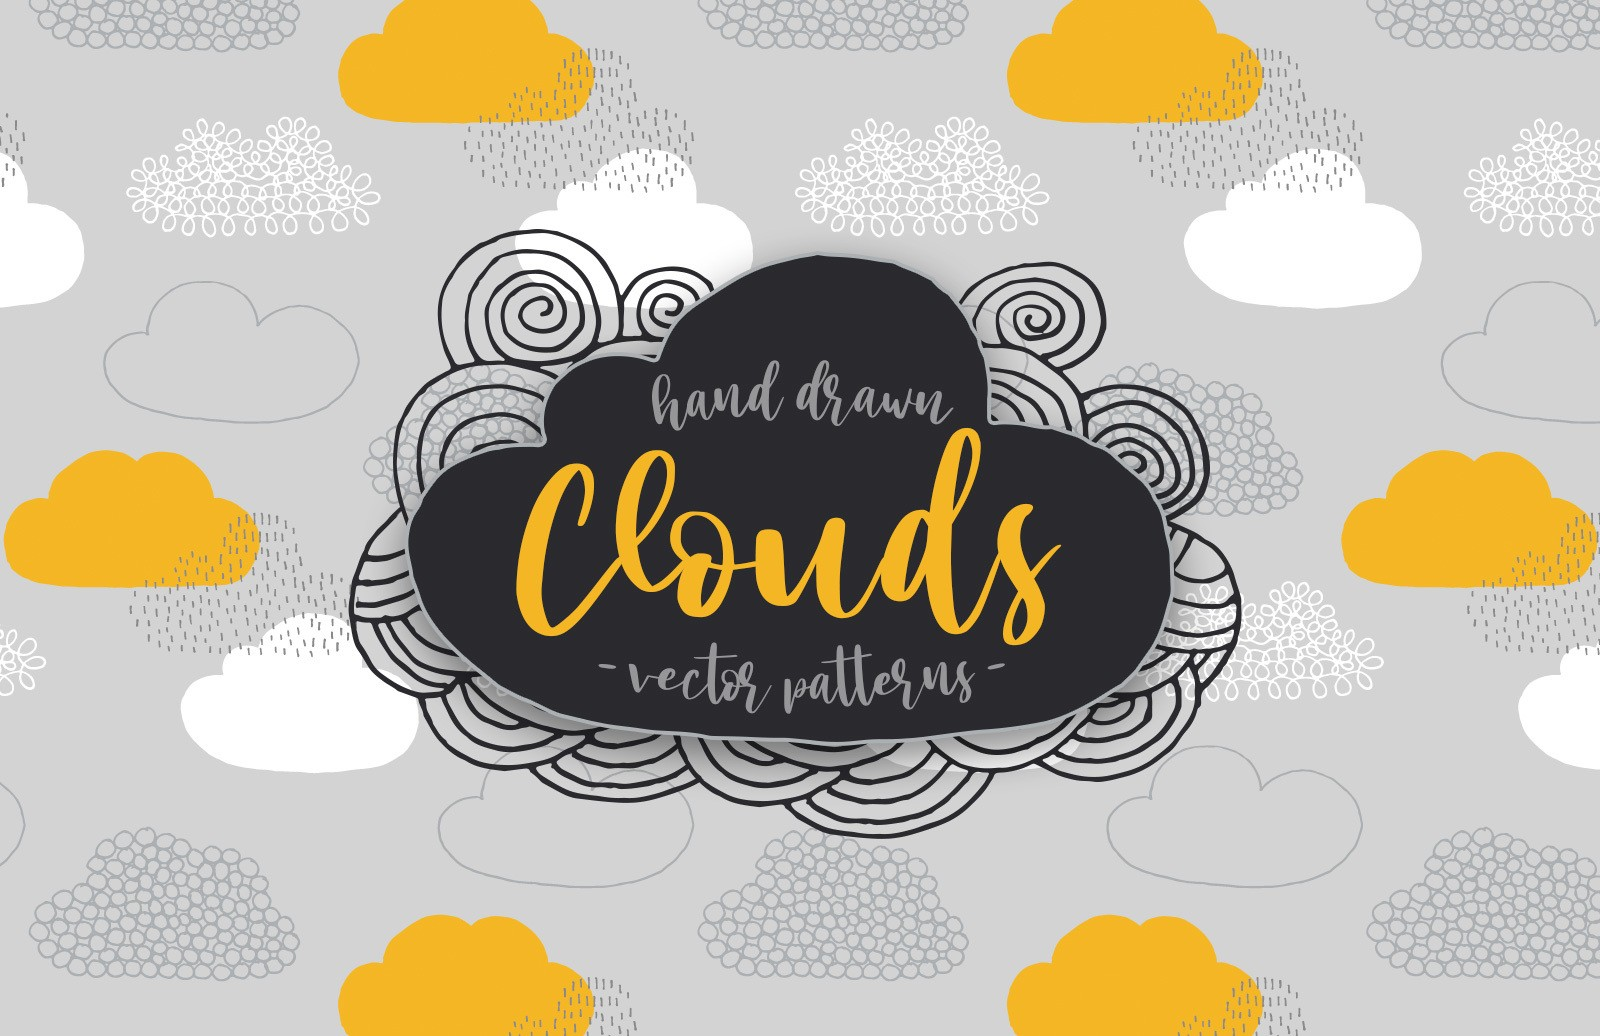 Hand Drawn Clouds Vector Patterns Preview 1